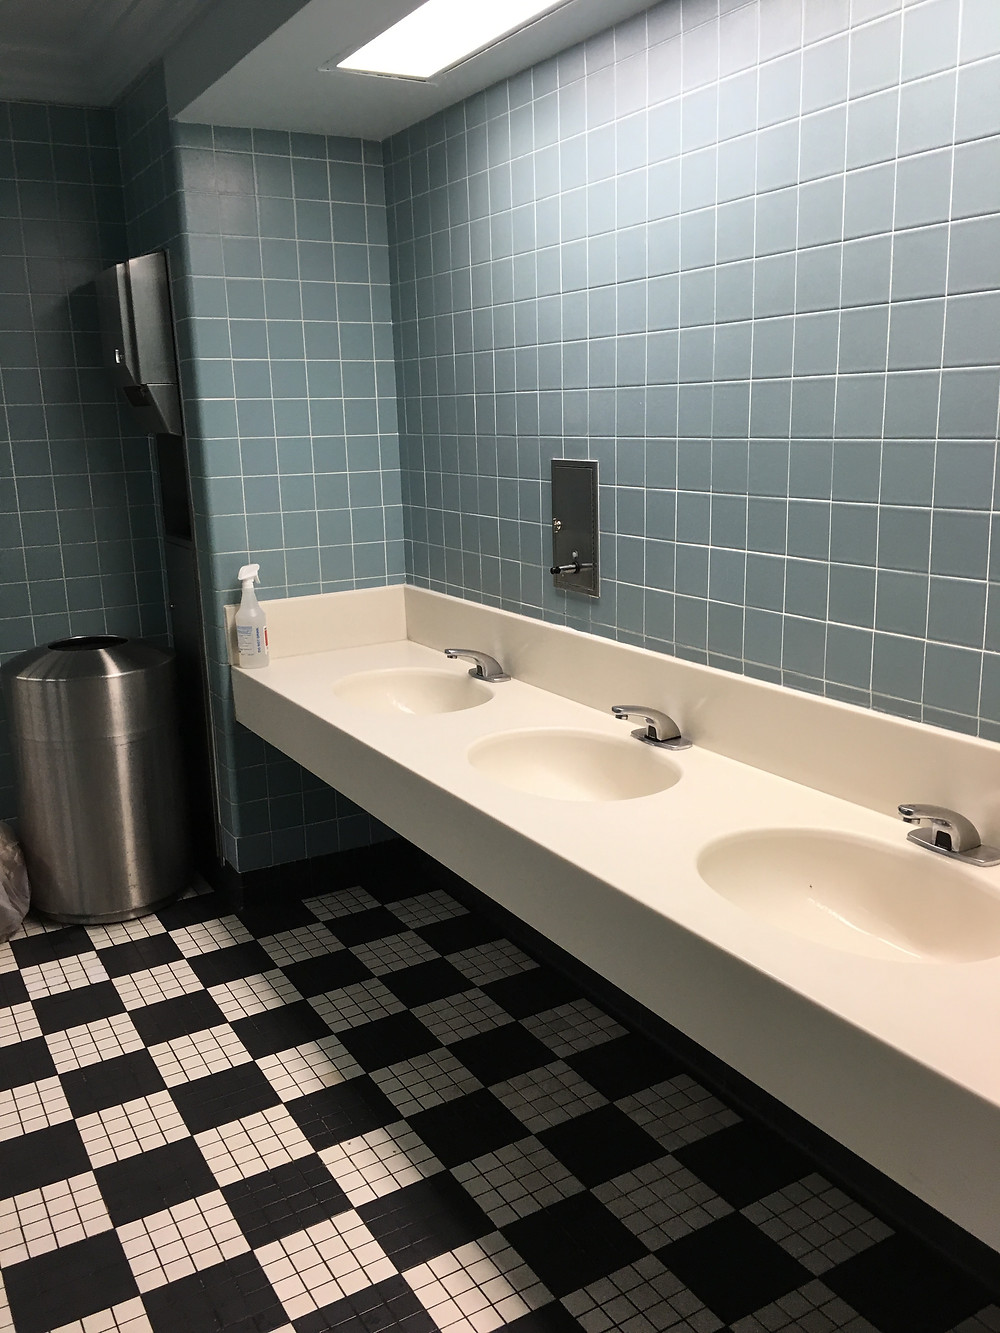 Sink Station, American Adventure Restroom, EPCOT